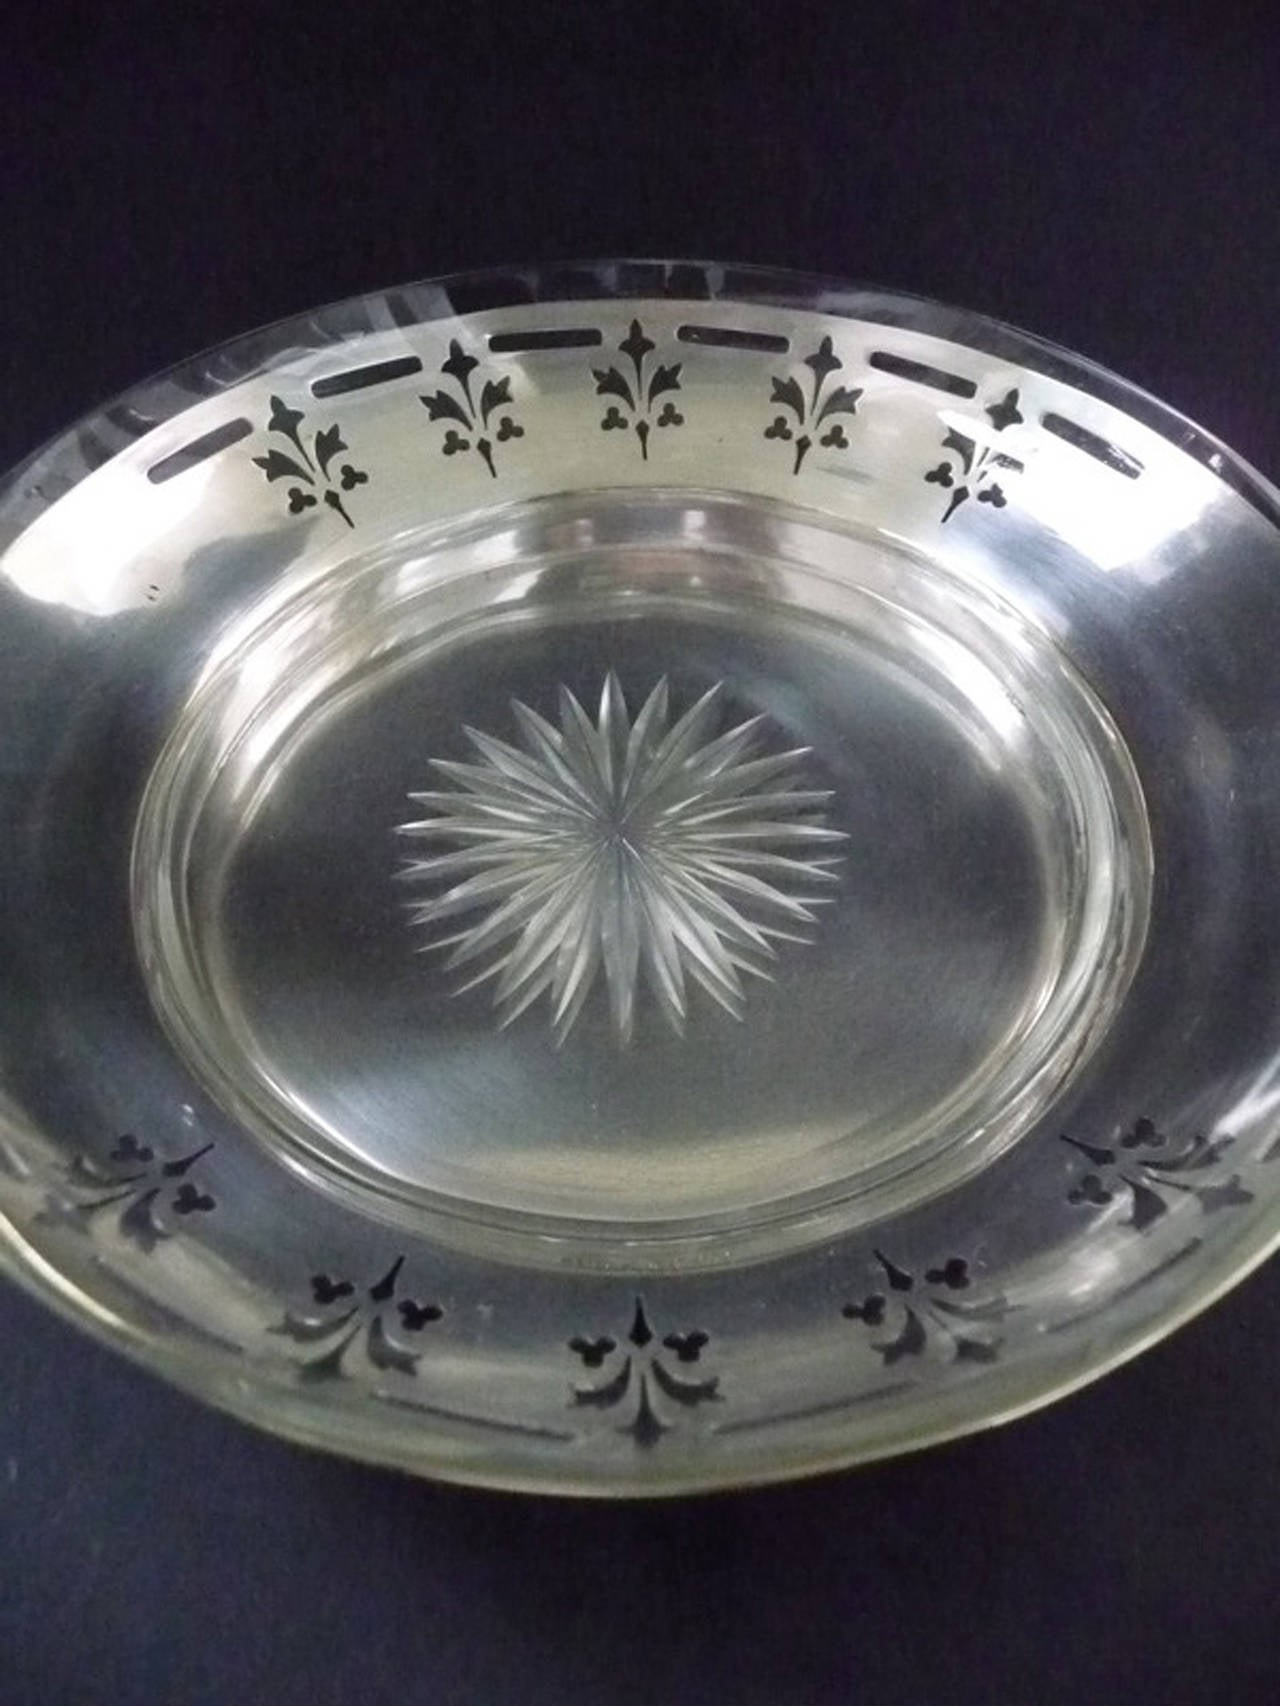 Vienna Secession decorative elegant silvered Argentor Wien Jardiniere with original crystal glass insert from about 1907.  Used undamaged condition with silver wear, no chips on crystal glass. Signed Argentor VIENNA IG  An attractive original